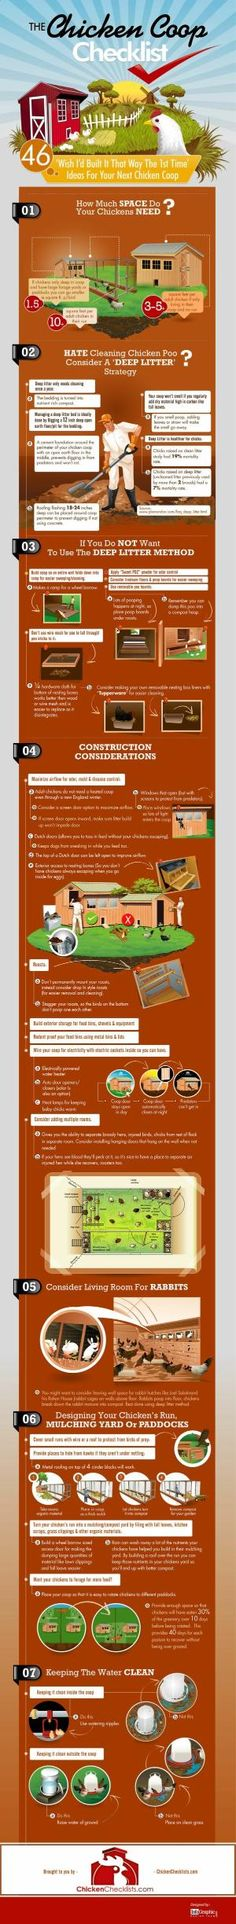 Chicken coop checklist infographic by esperanza